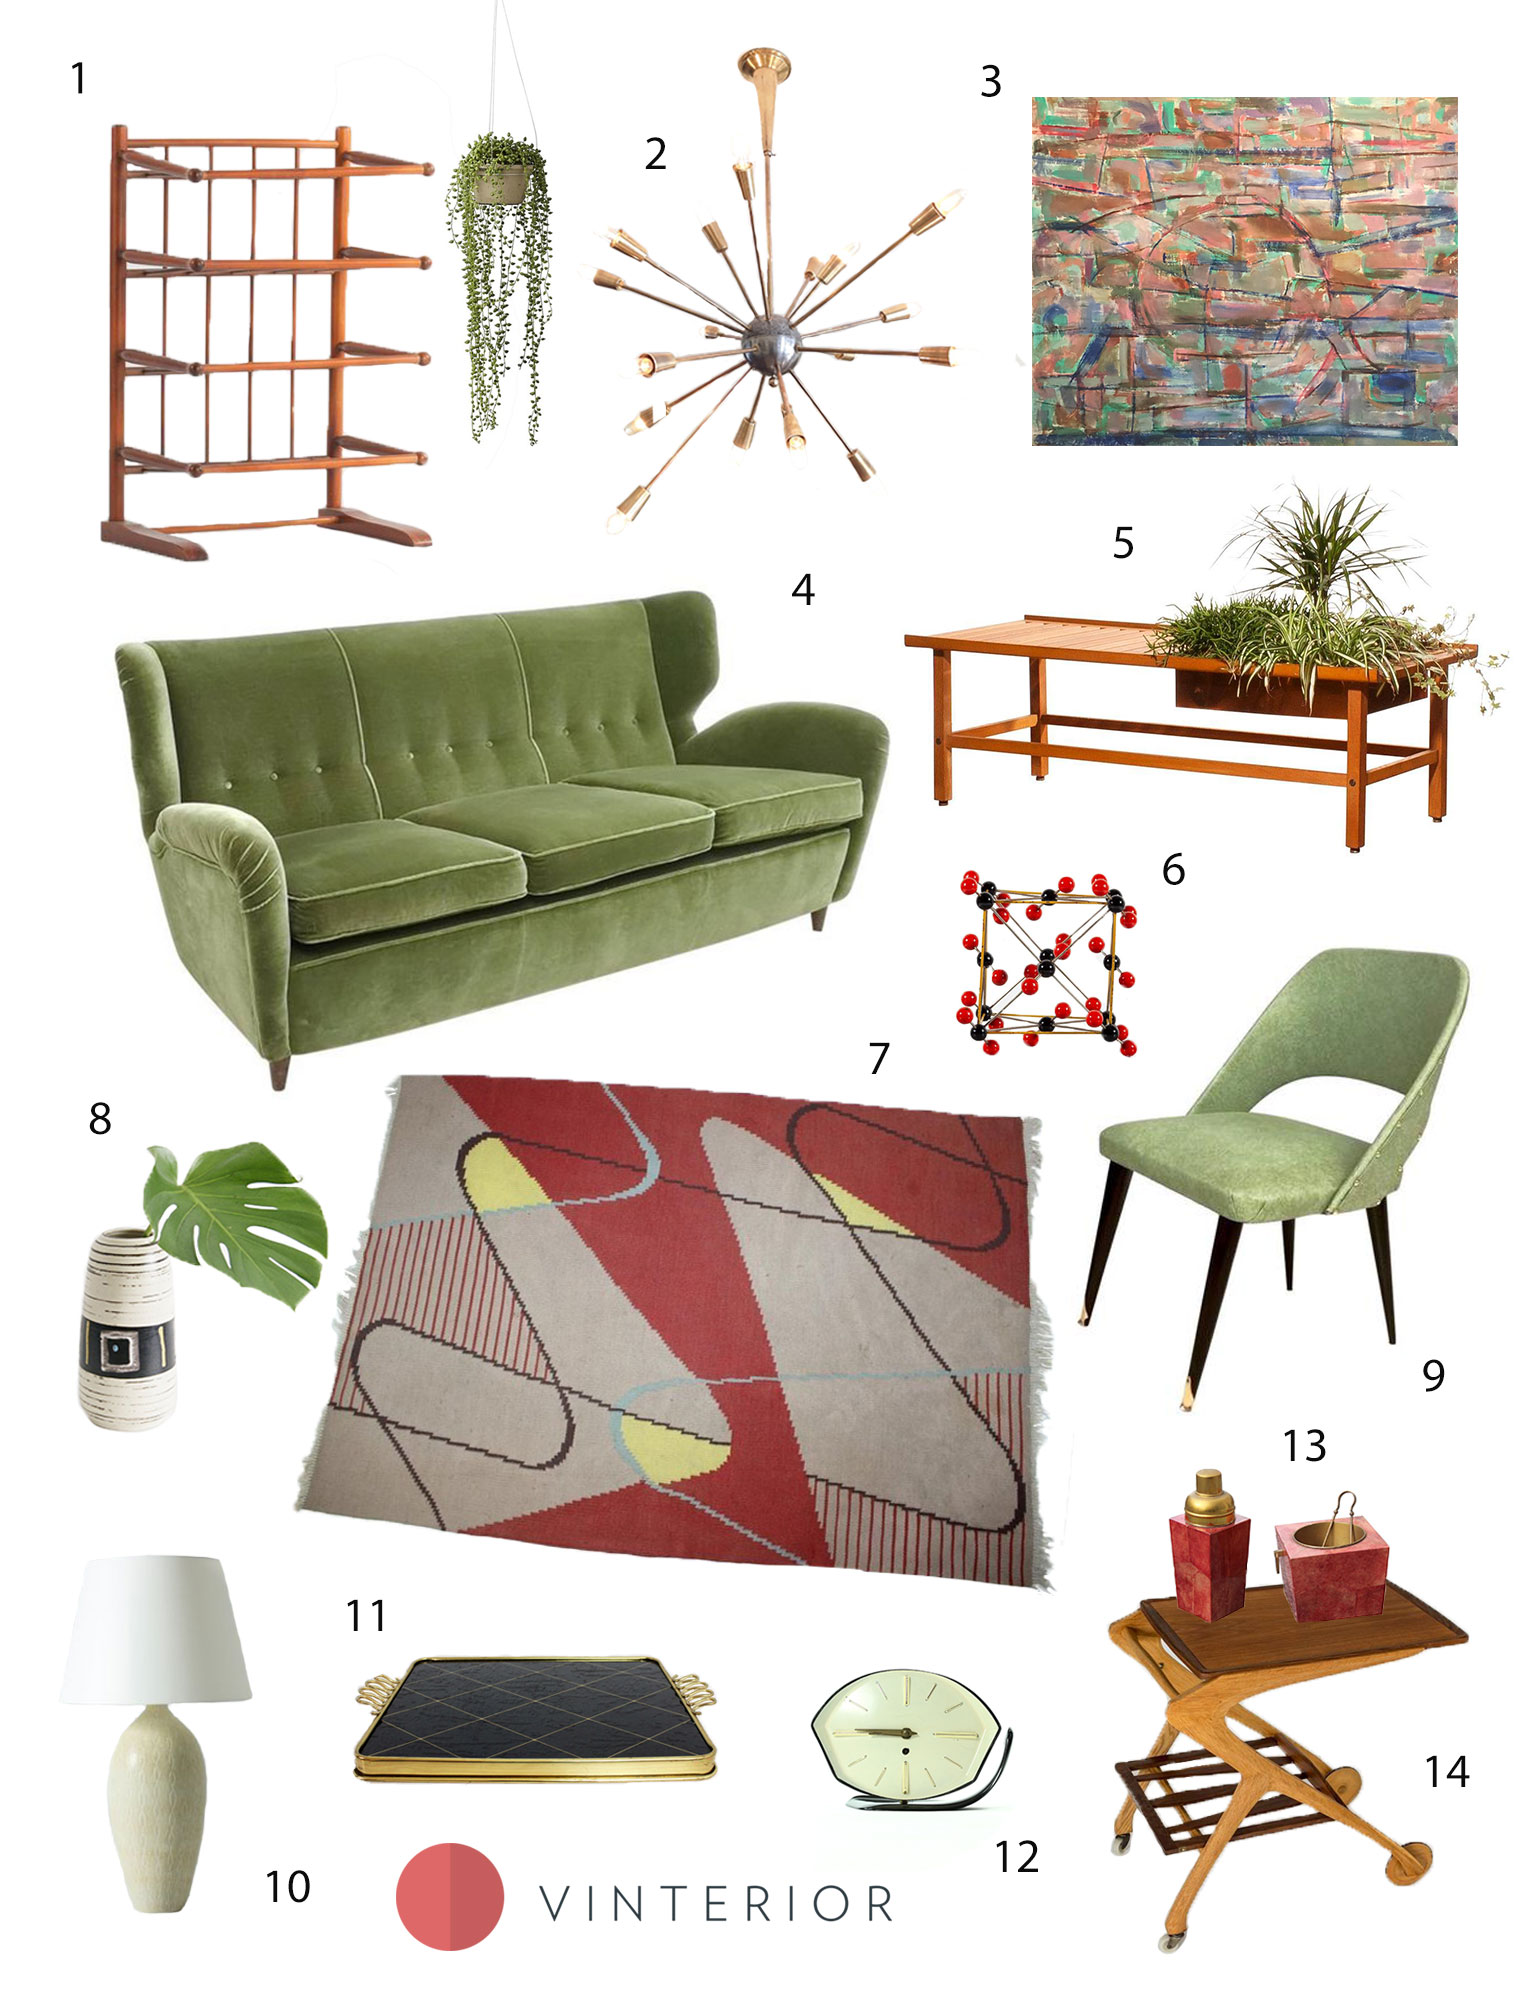 Get the Look: This 1950s Living Room is Designed for Leisure